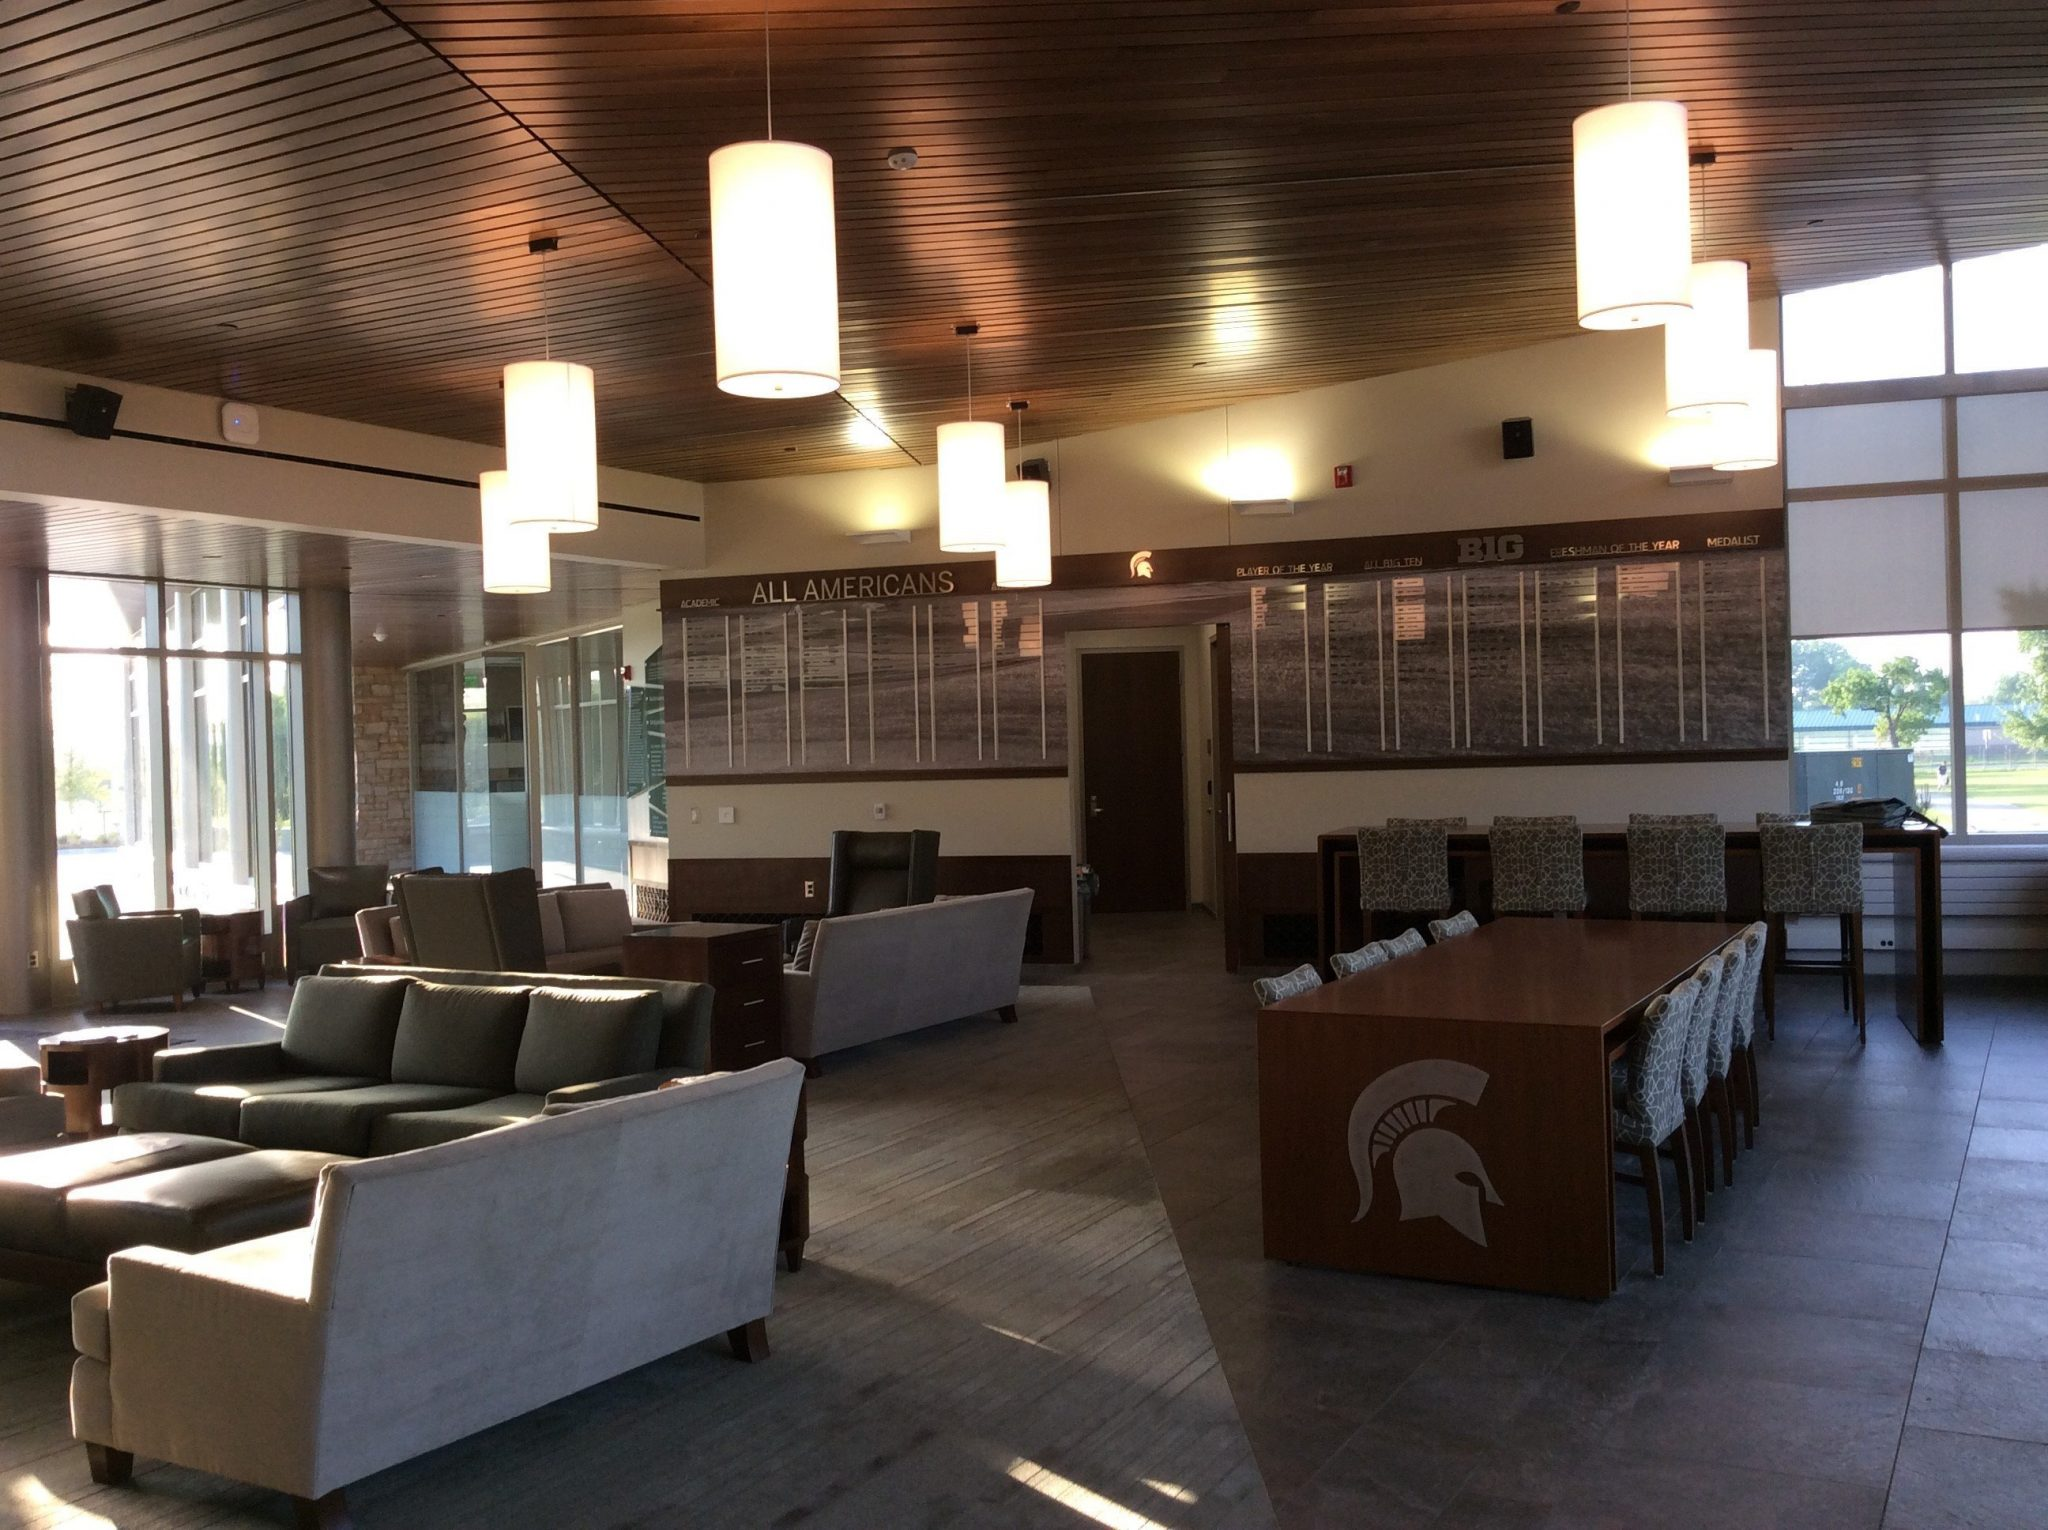 11Michigan State University golf center common room with tables